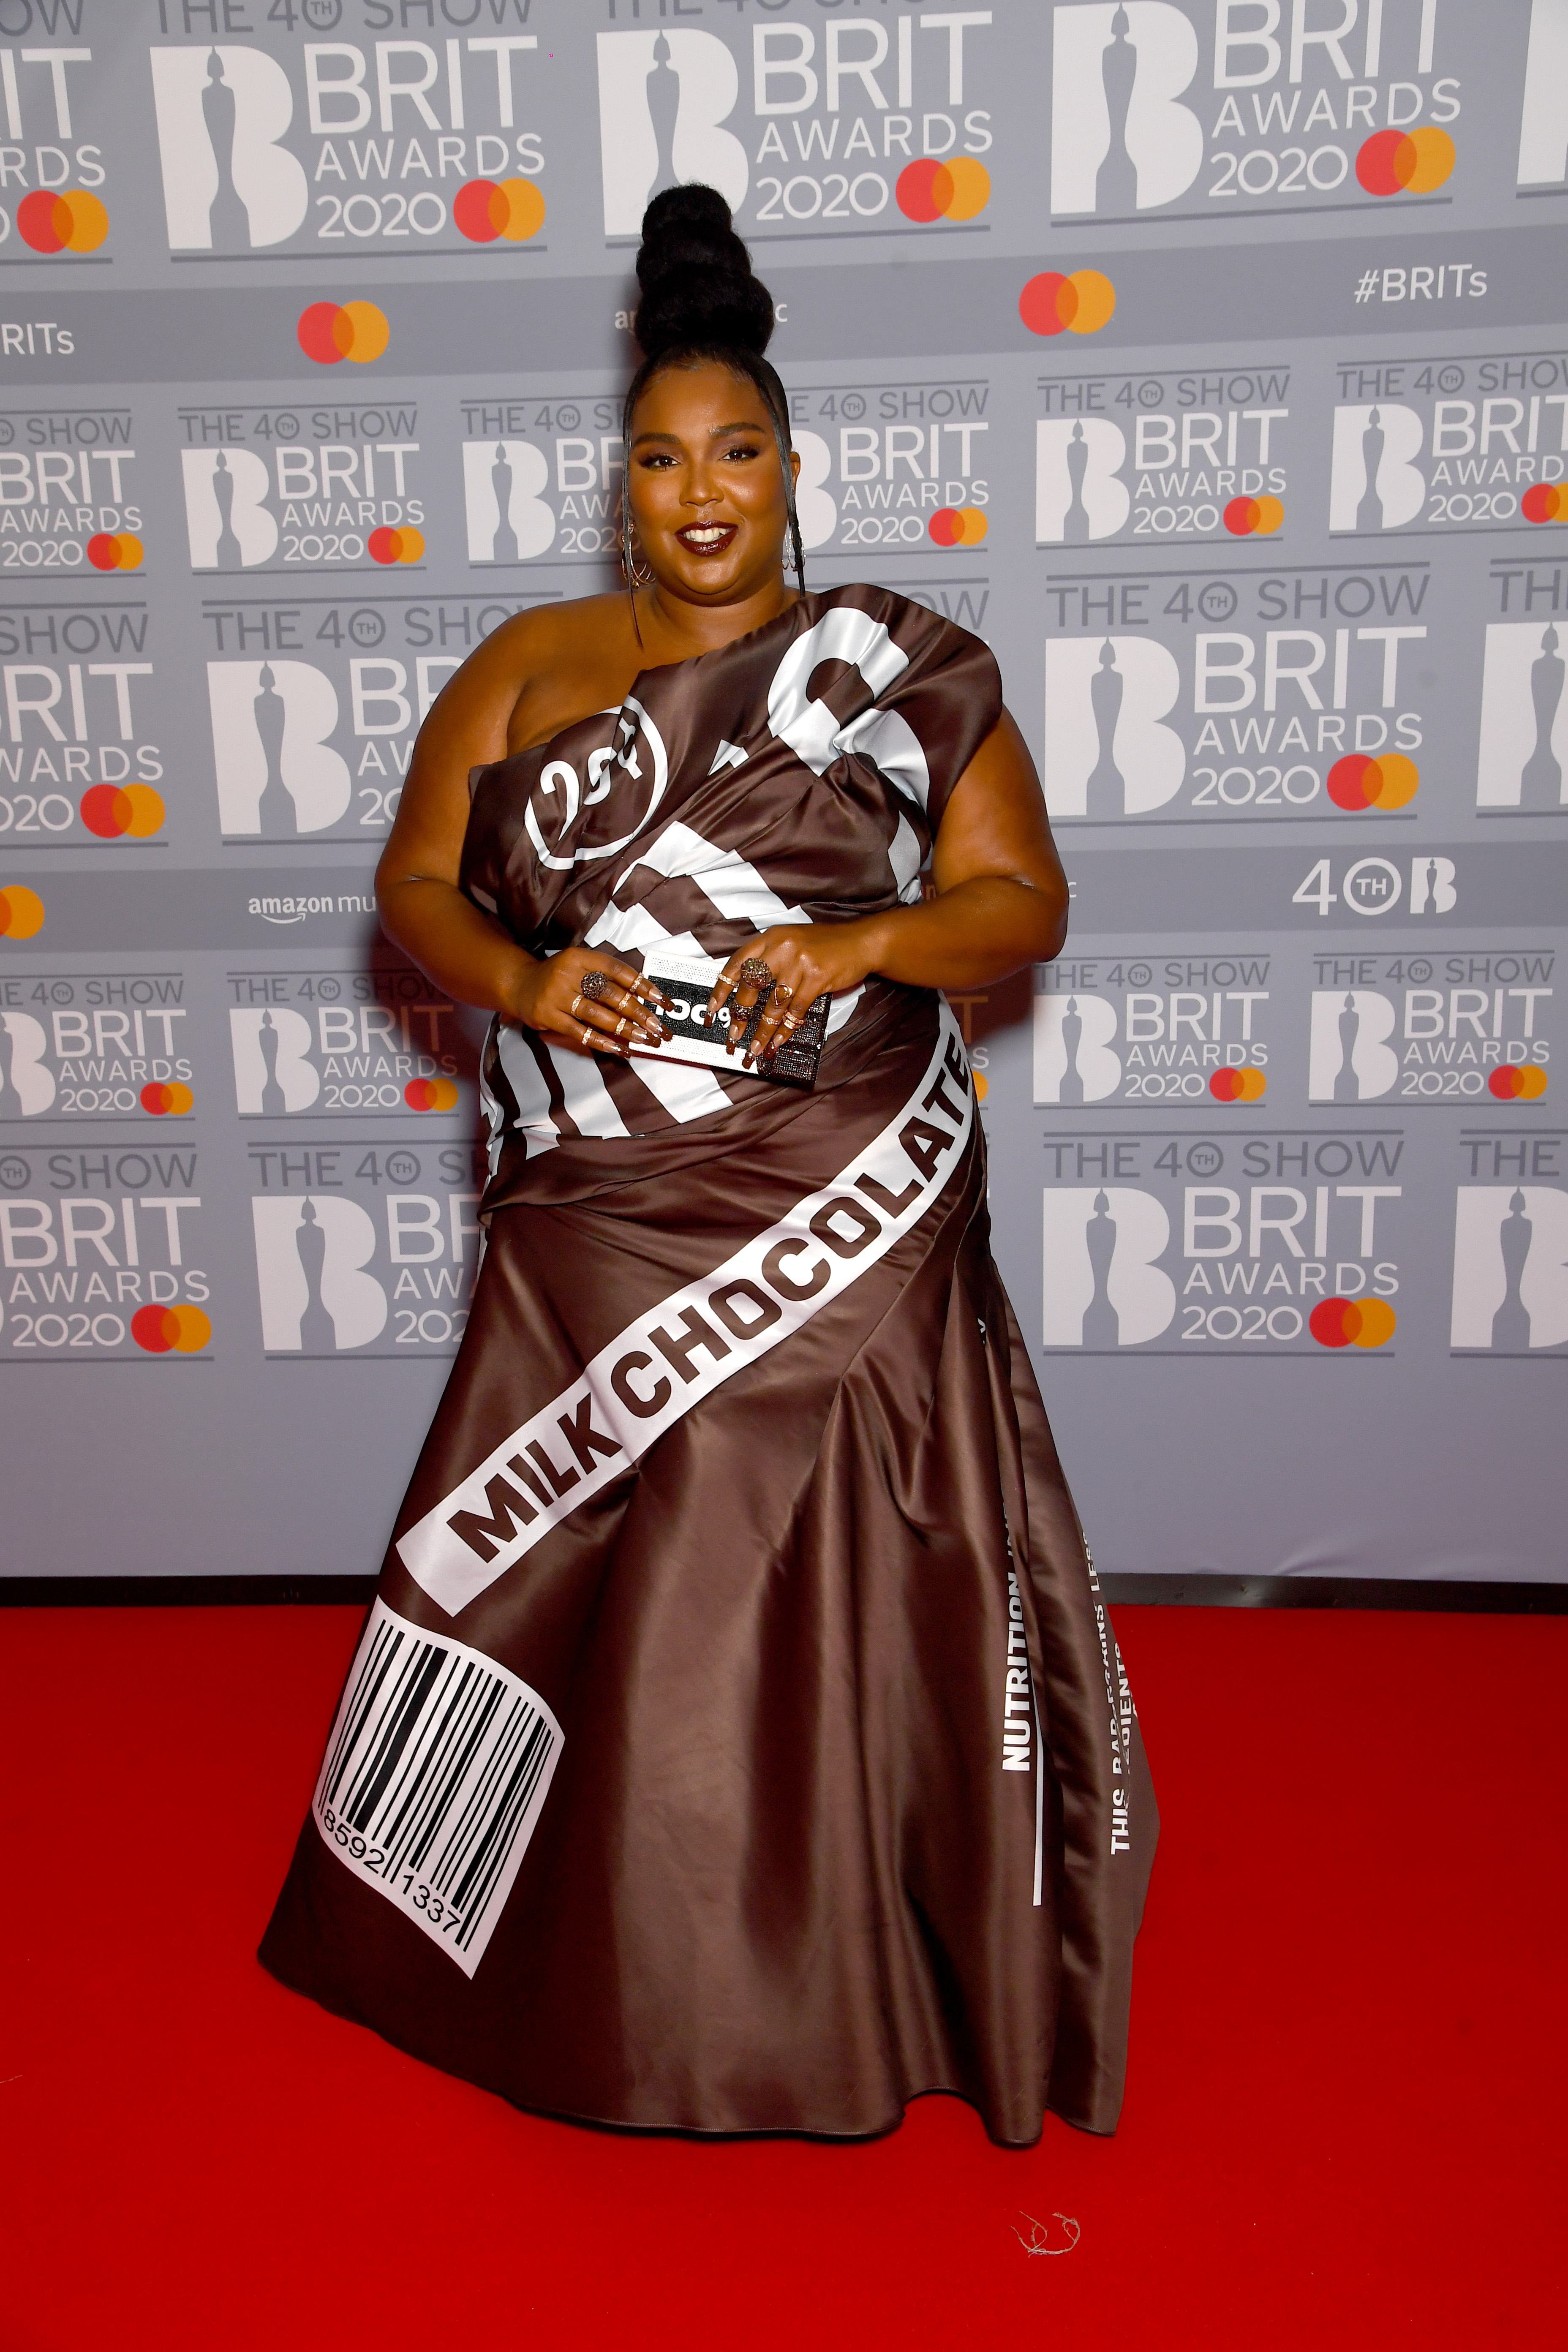 Lizzo attends The BRIT Awards 2020 at The O2 Arena on February 18, 2020 in London, England. (Photo by Dave J Hogan/Getty Images)